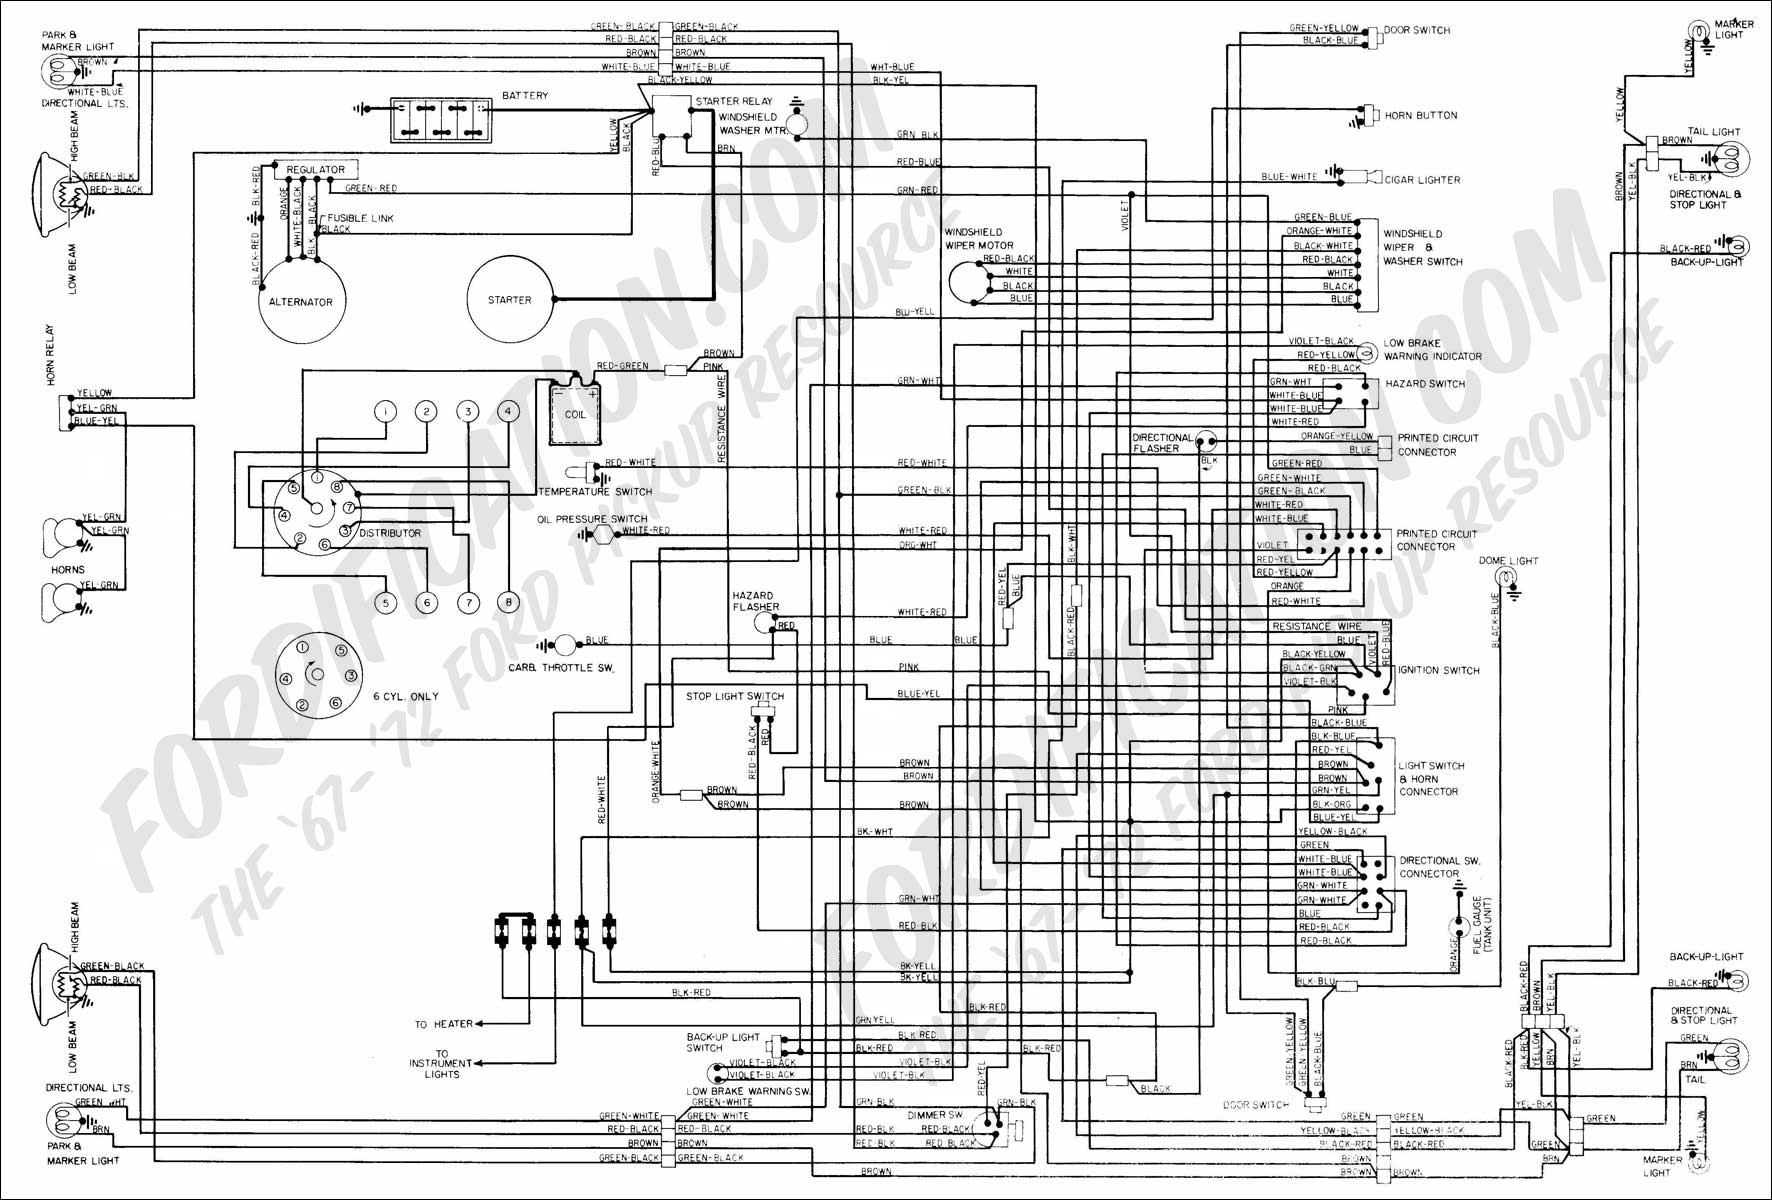 1972 Ford F100 Wiring Schematics Data Wiring Schema 1969 Ford Thunderbird  Wiring Diagram 1972 Ford Thunderbird Wiring Diagram